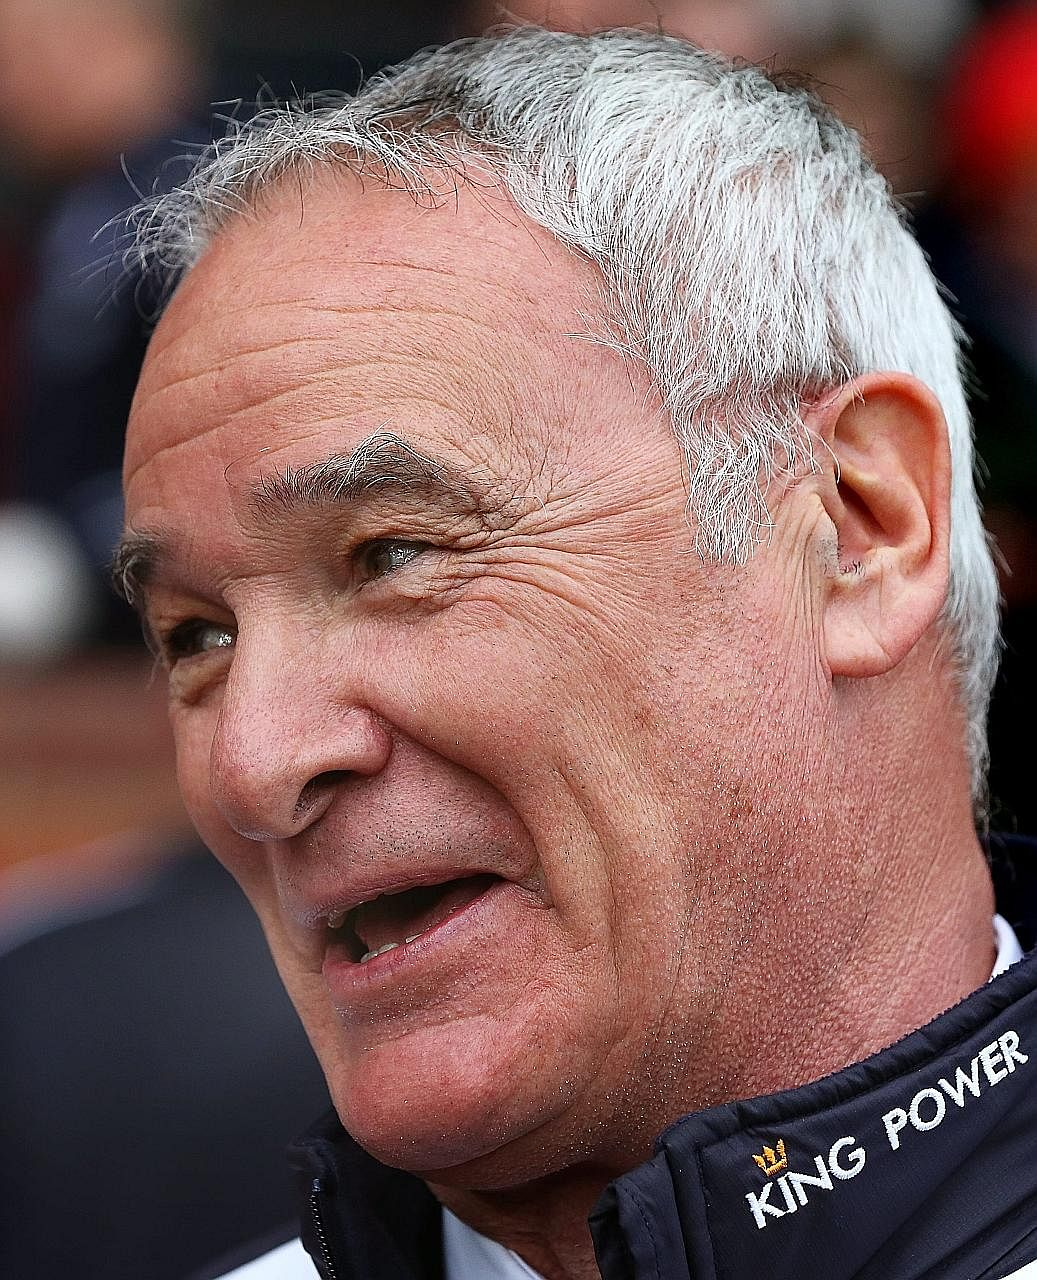 An EPL win will be Leicester's first title in 132 years, and Ranieri's first in 29 years as a manager.